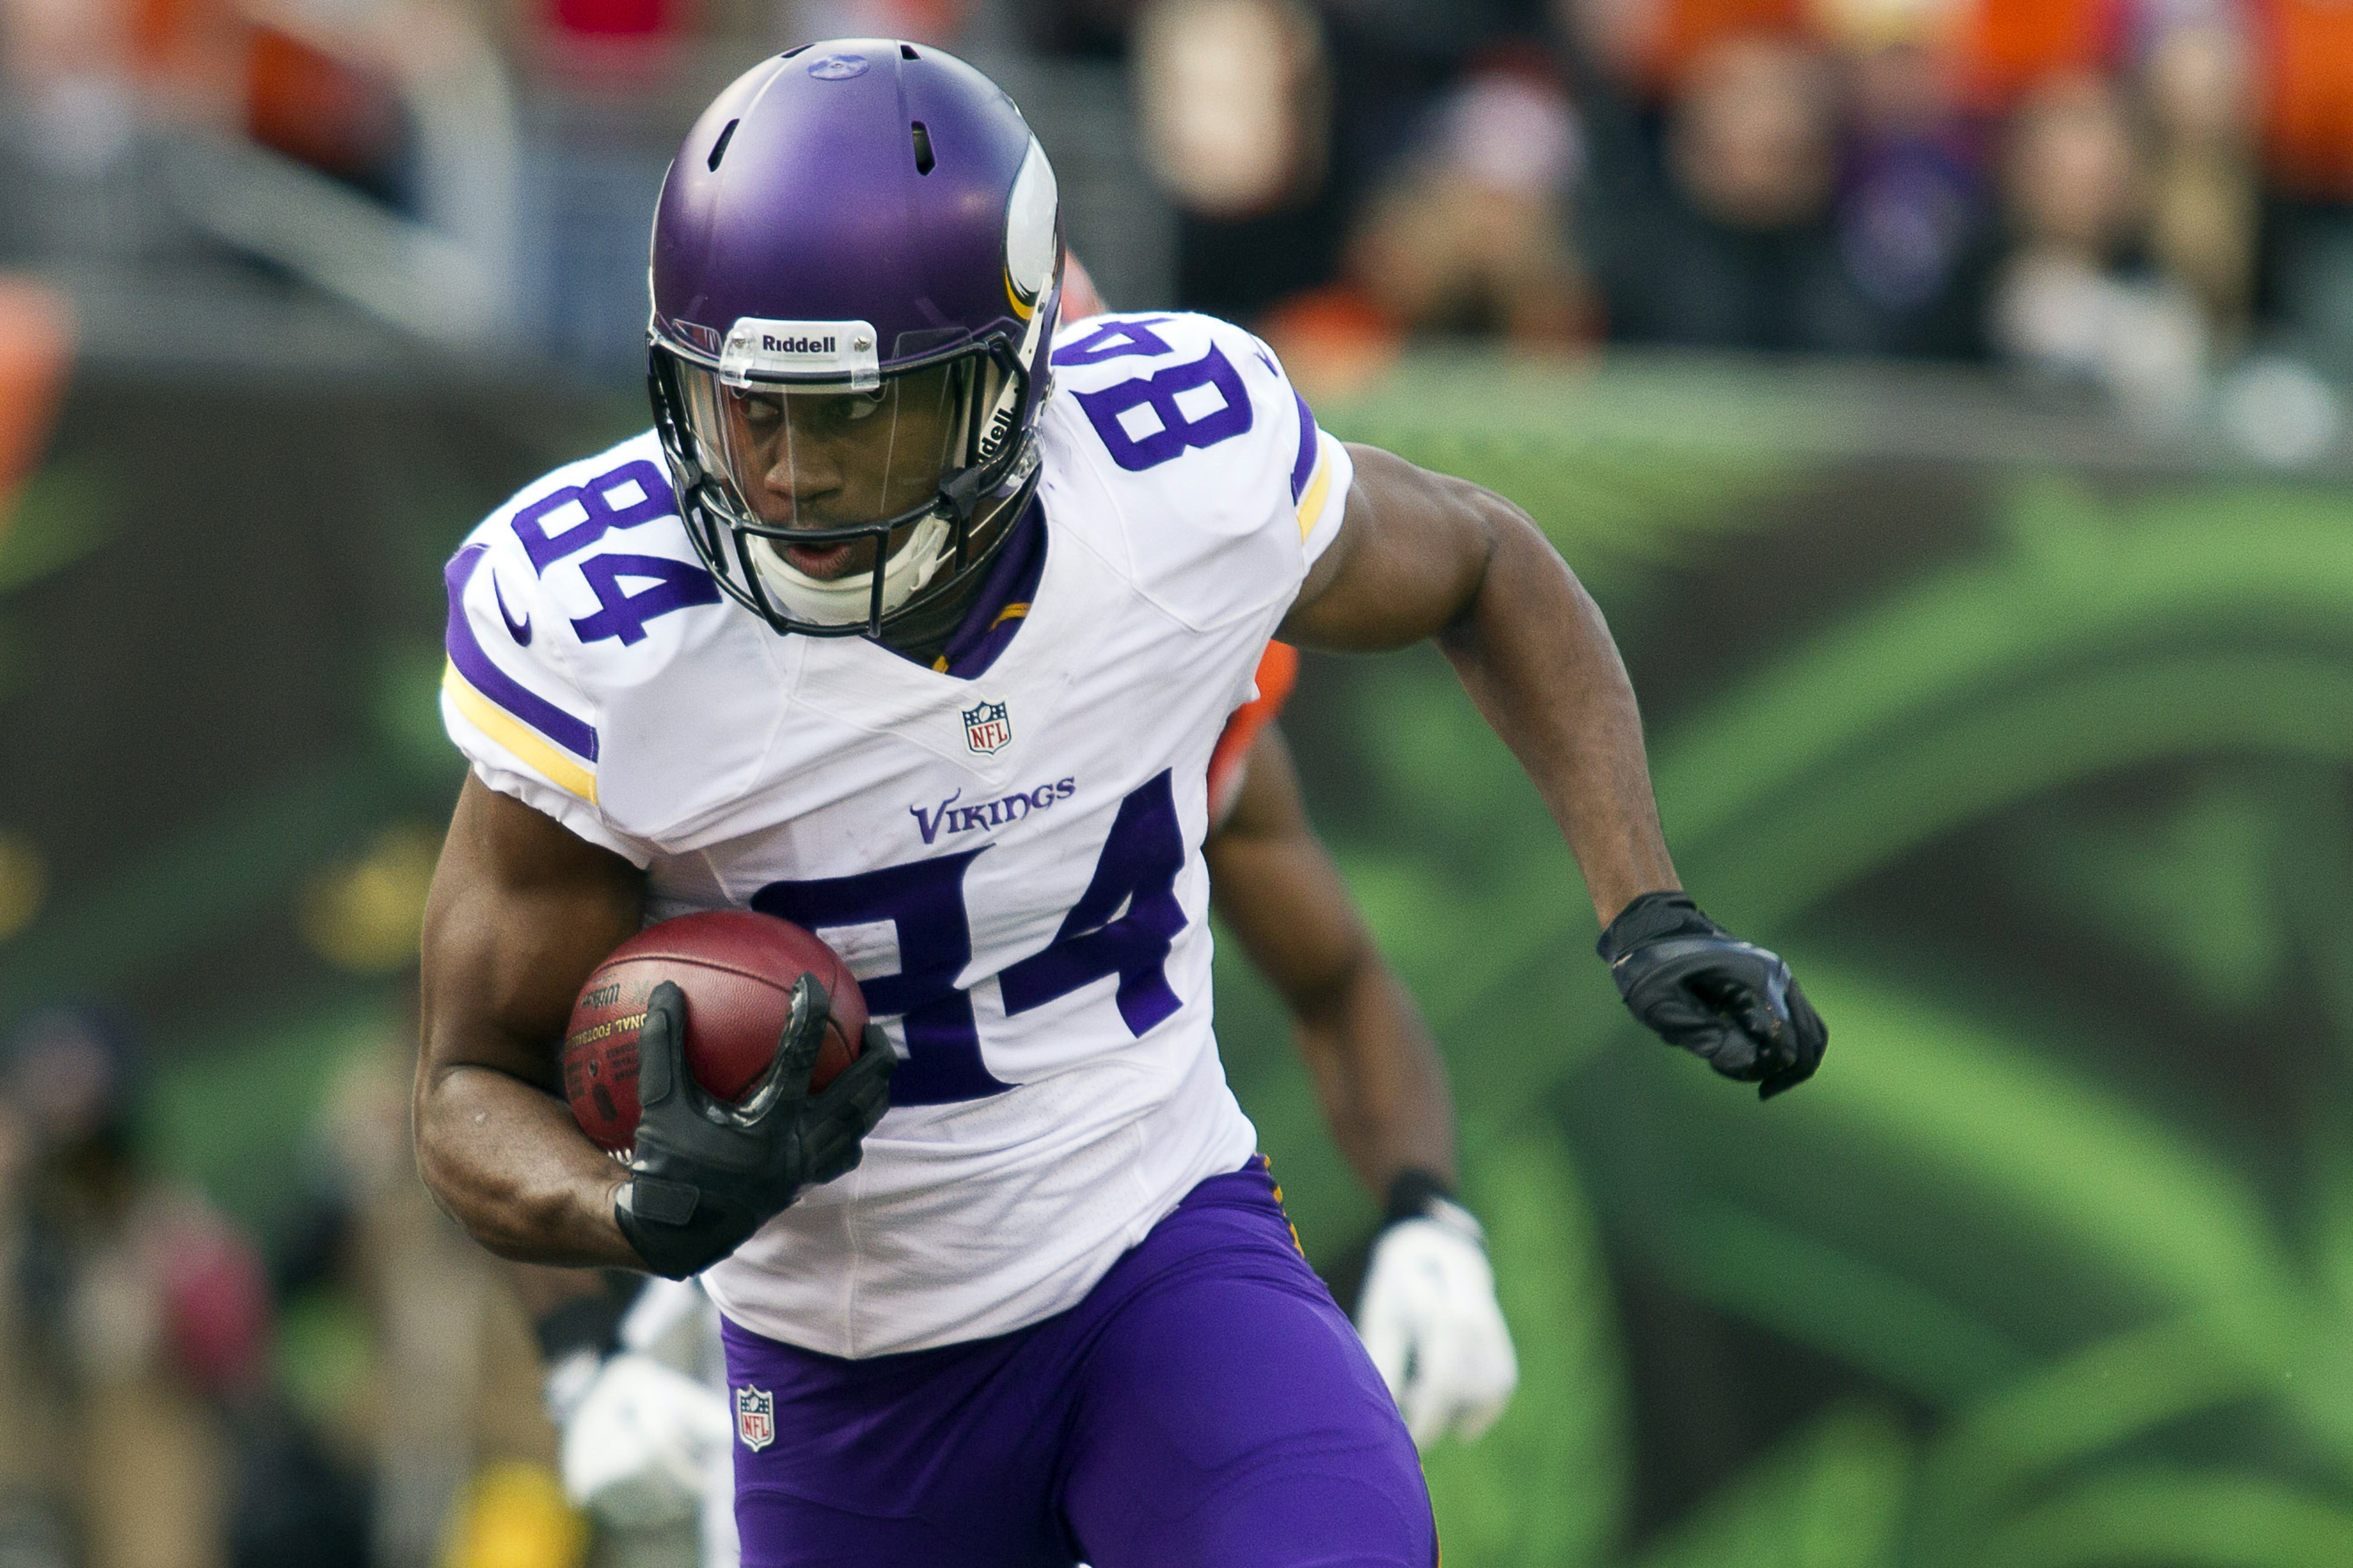 Would Cordarelle Patterson have been the better choice for the Houston Texans at pick no. 27 last year?